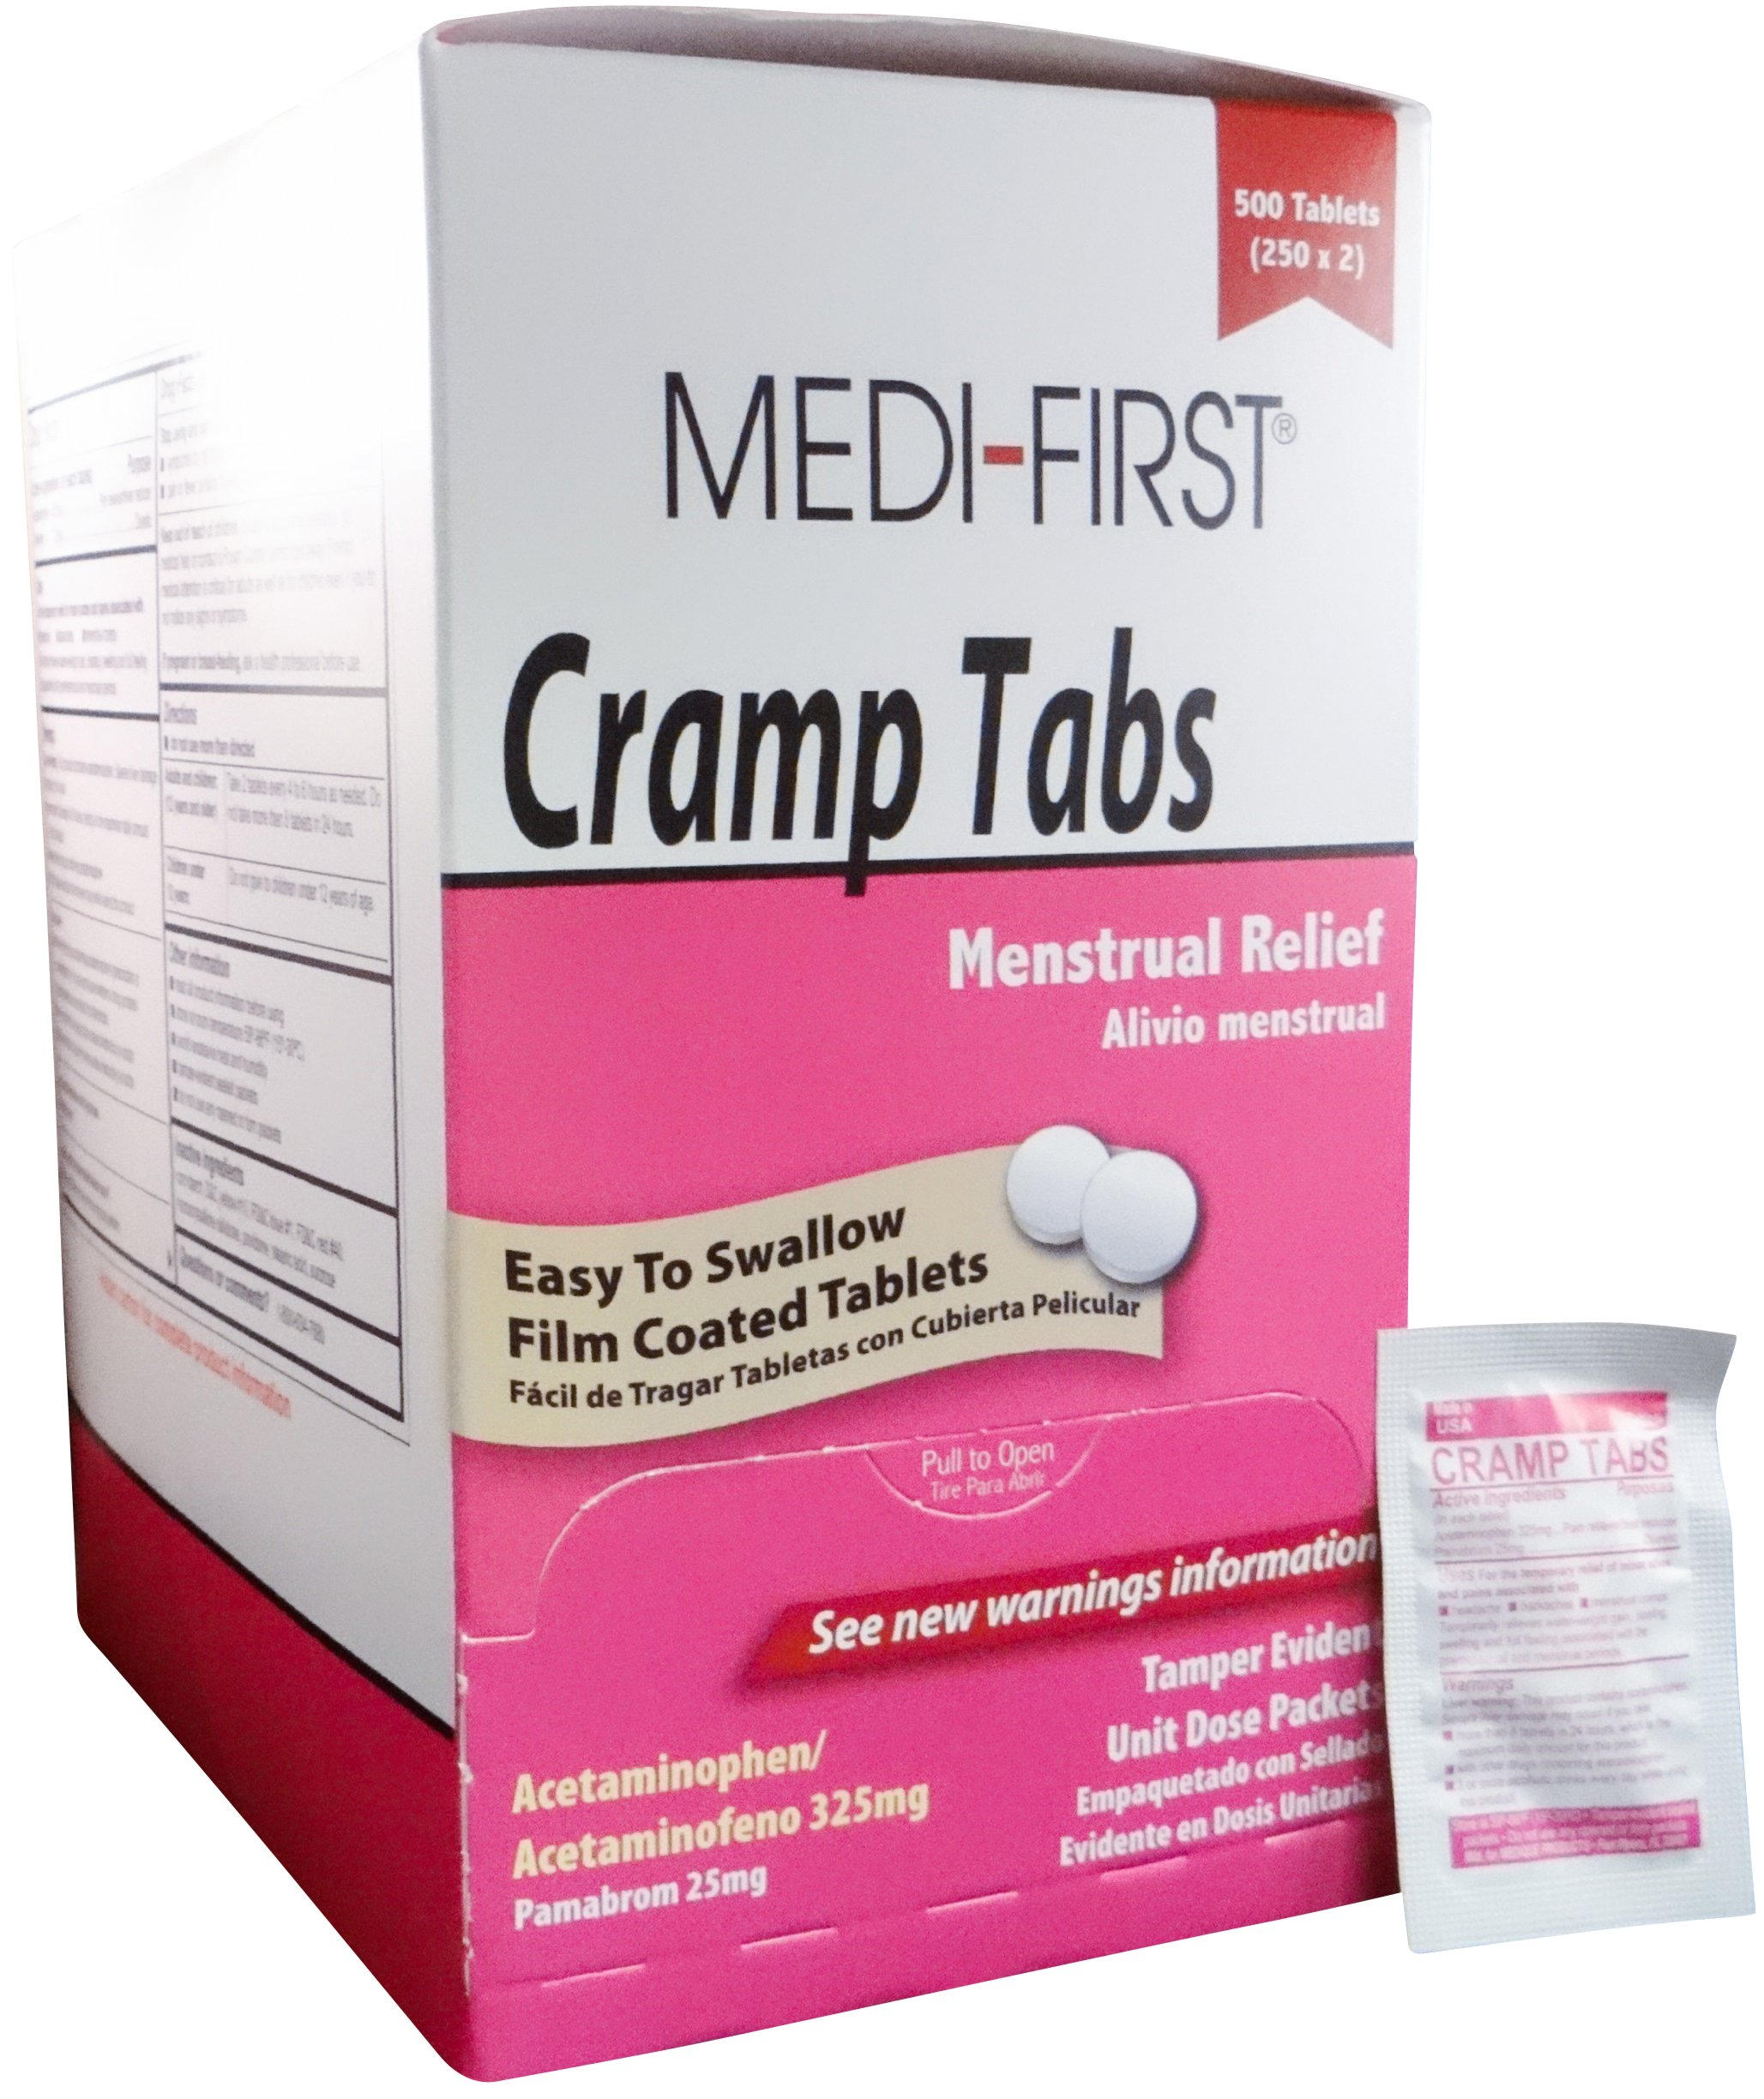 Medi-First Menstrual Relief Pain Relief Acetaminophen Cramp Tablets - MS75585 (3,000) by Medique